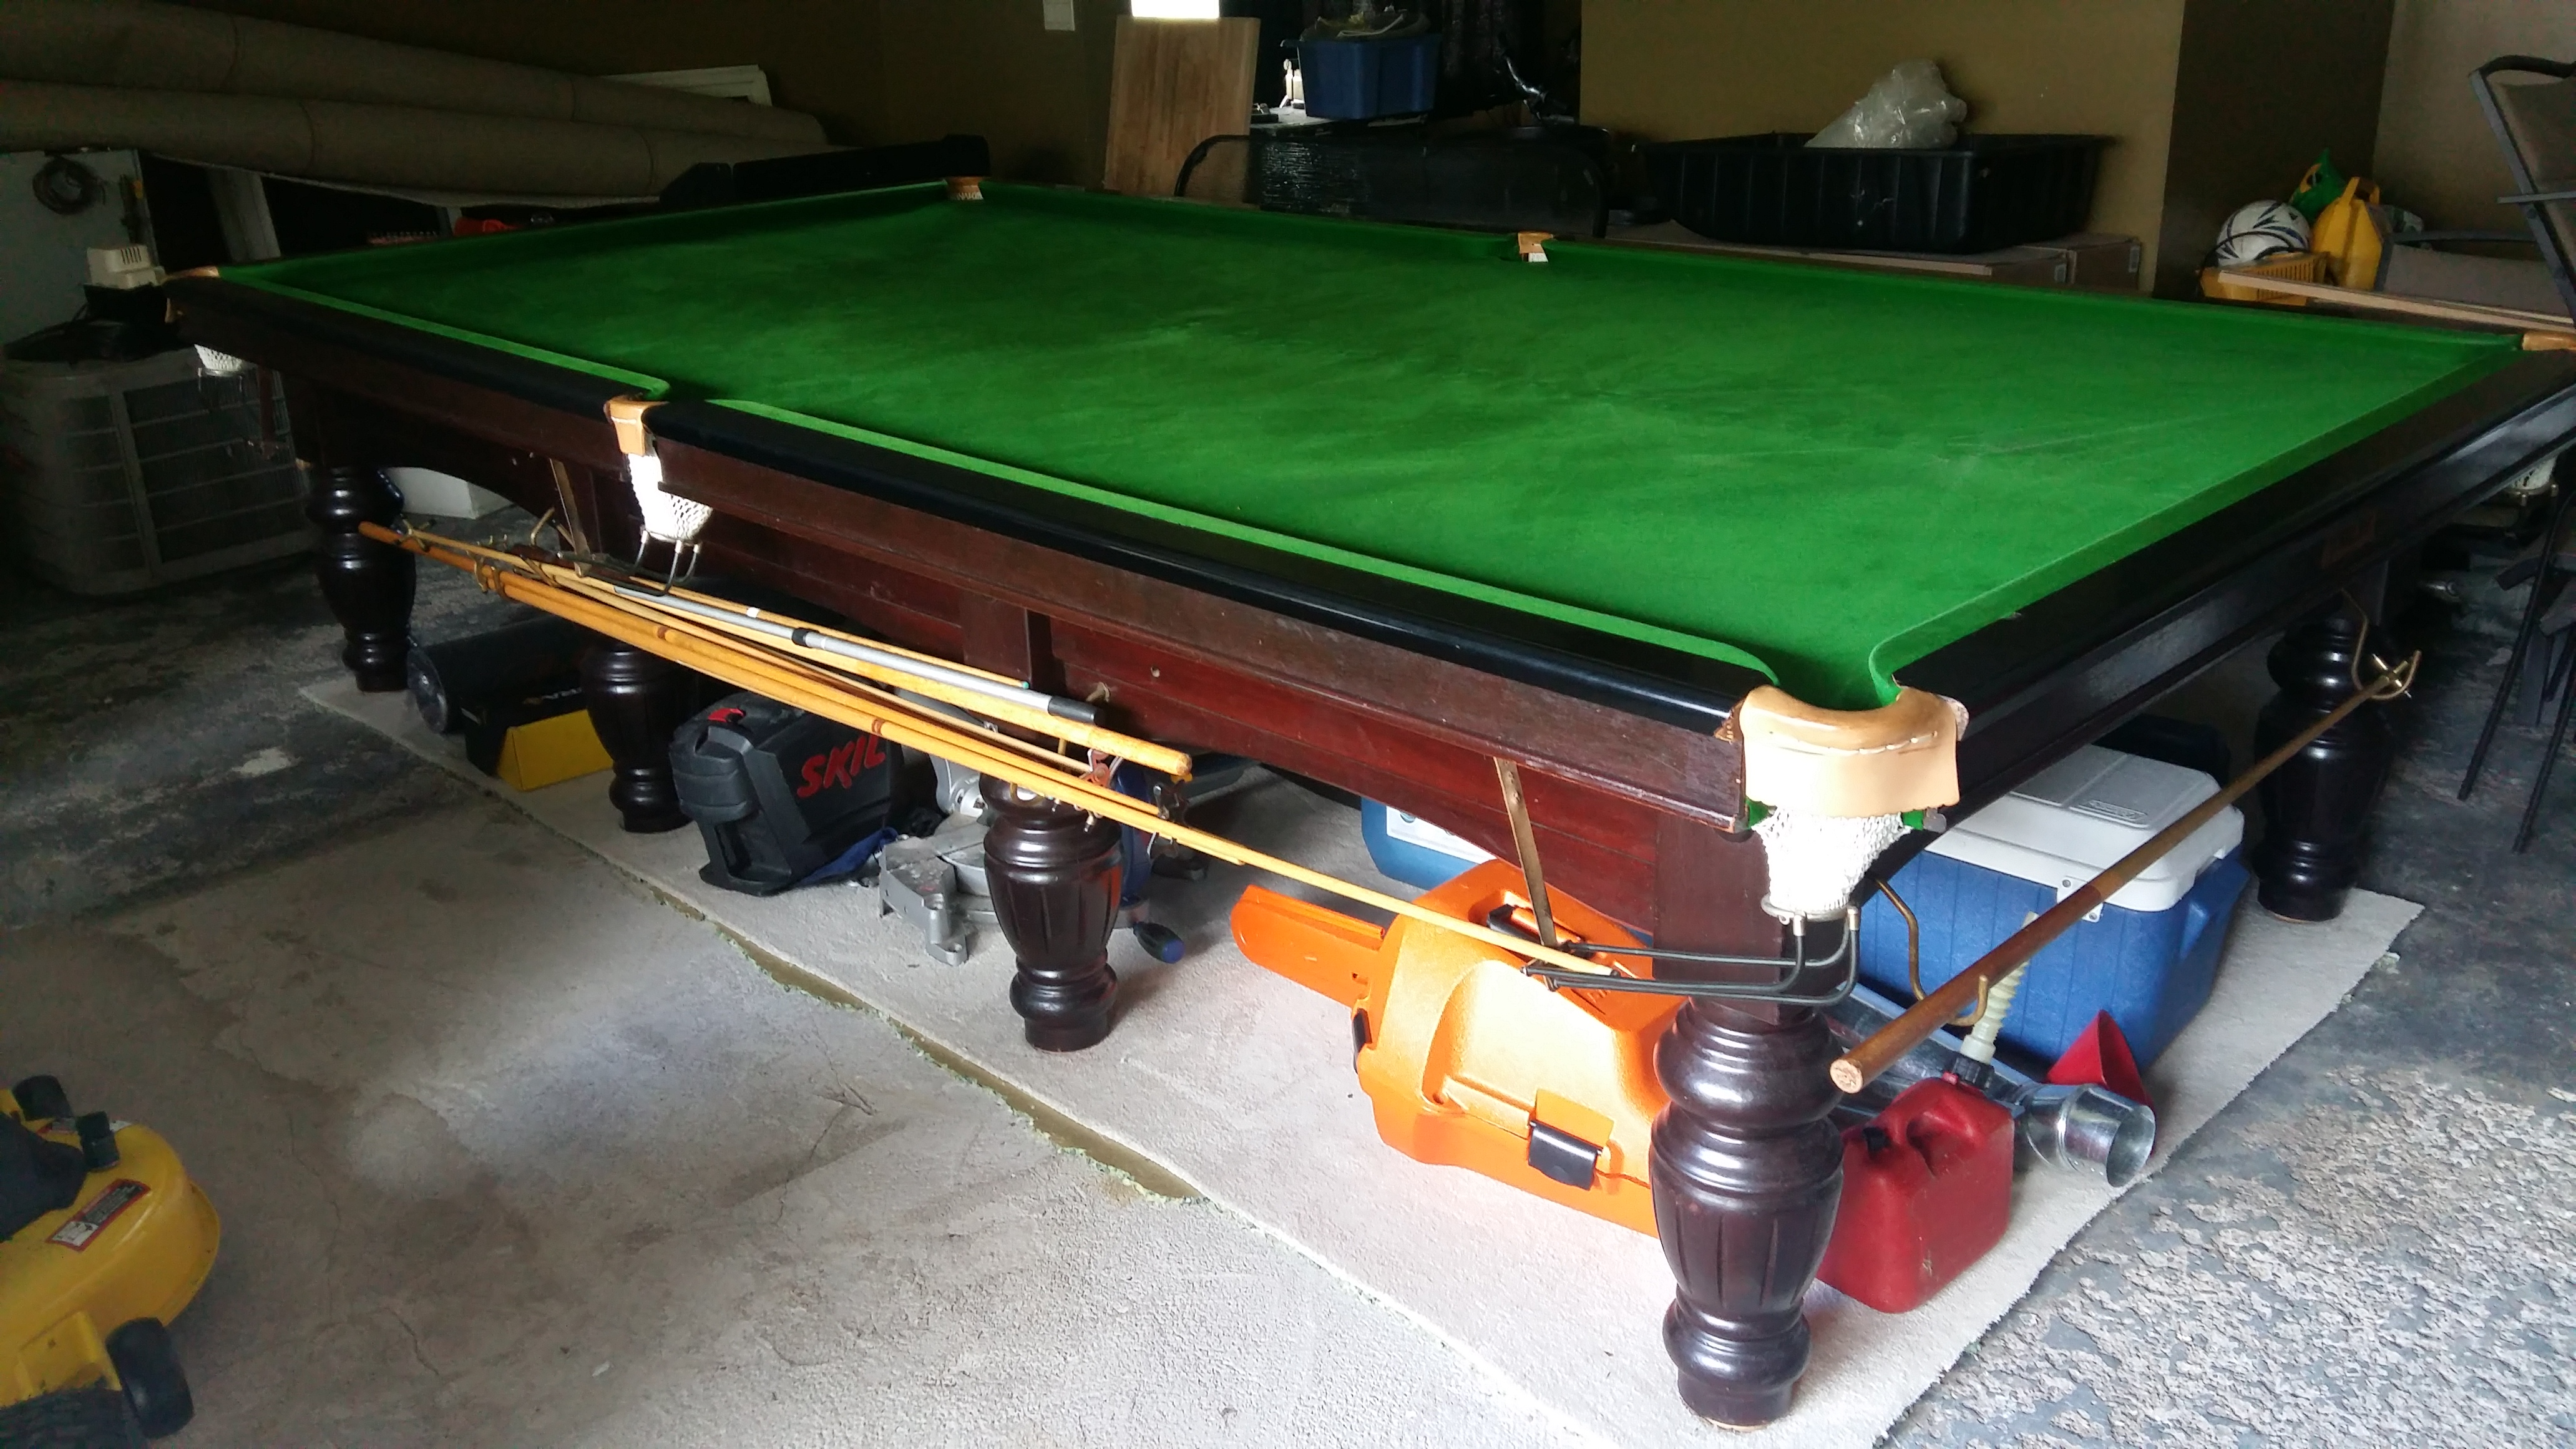 pool billiard ft gross com sedona online ortmann table billardtisch billiards snooker